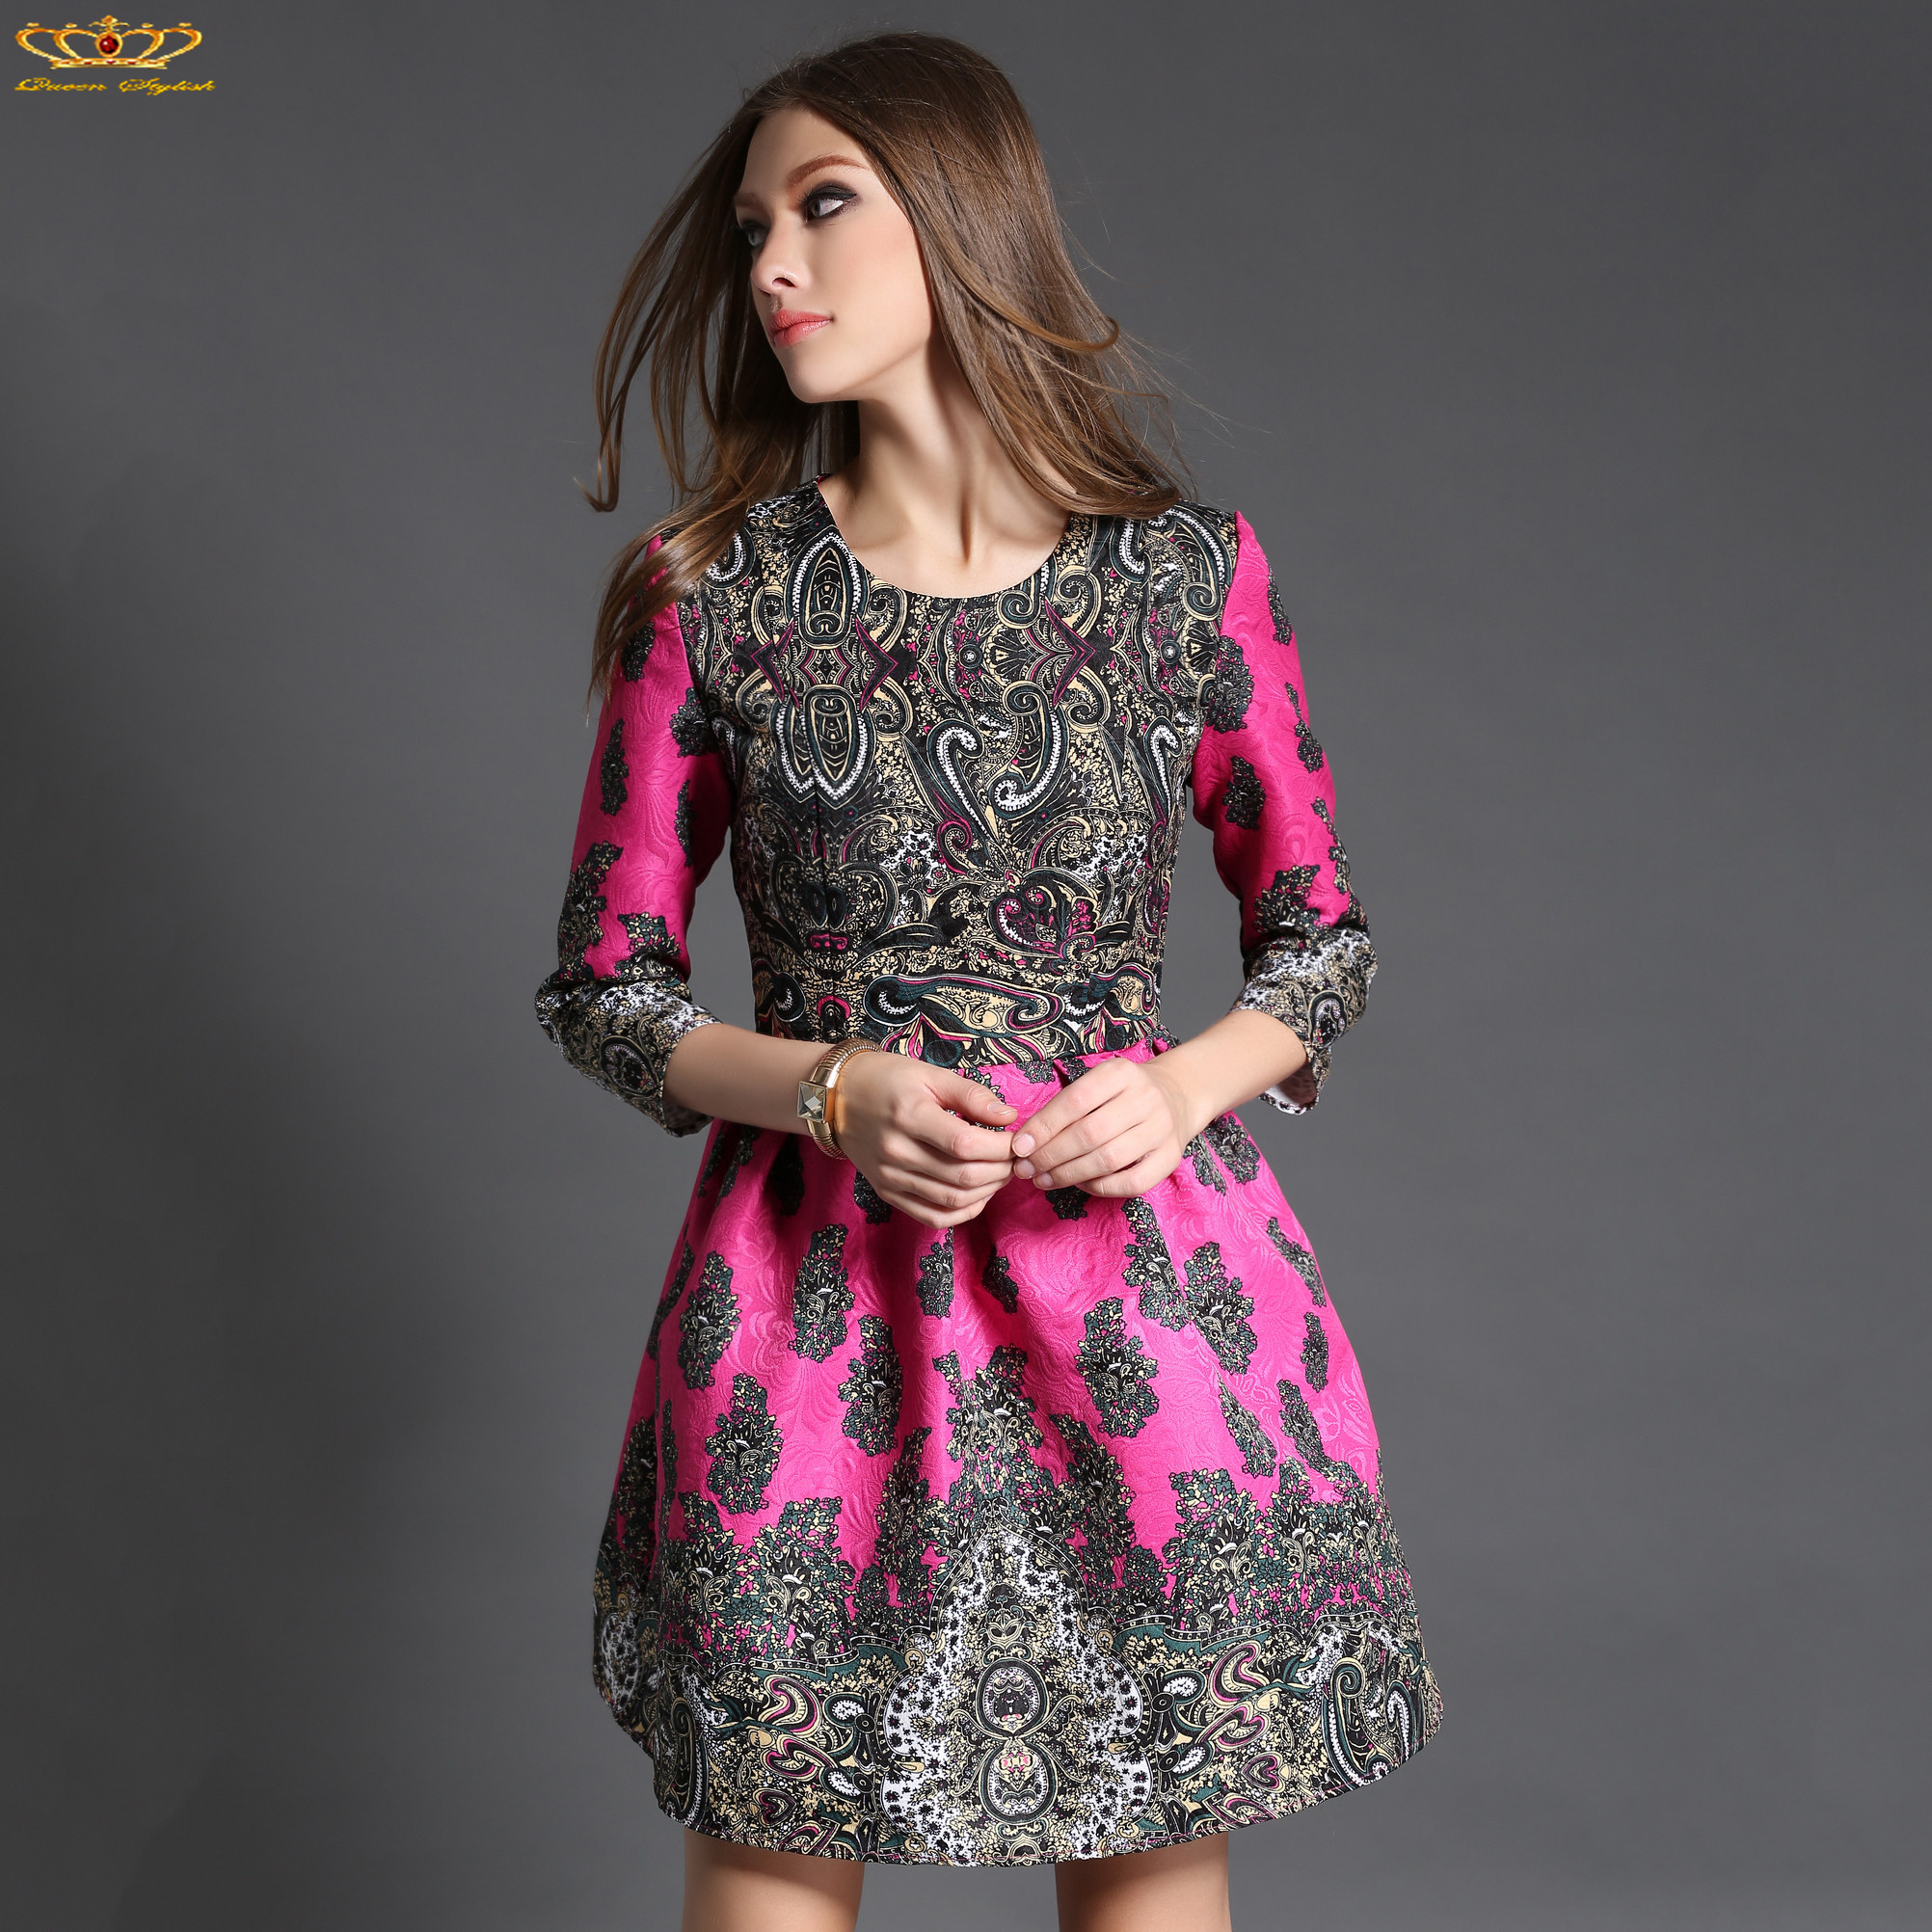 Lady clothing stores online